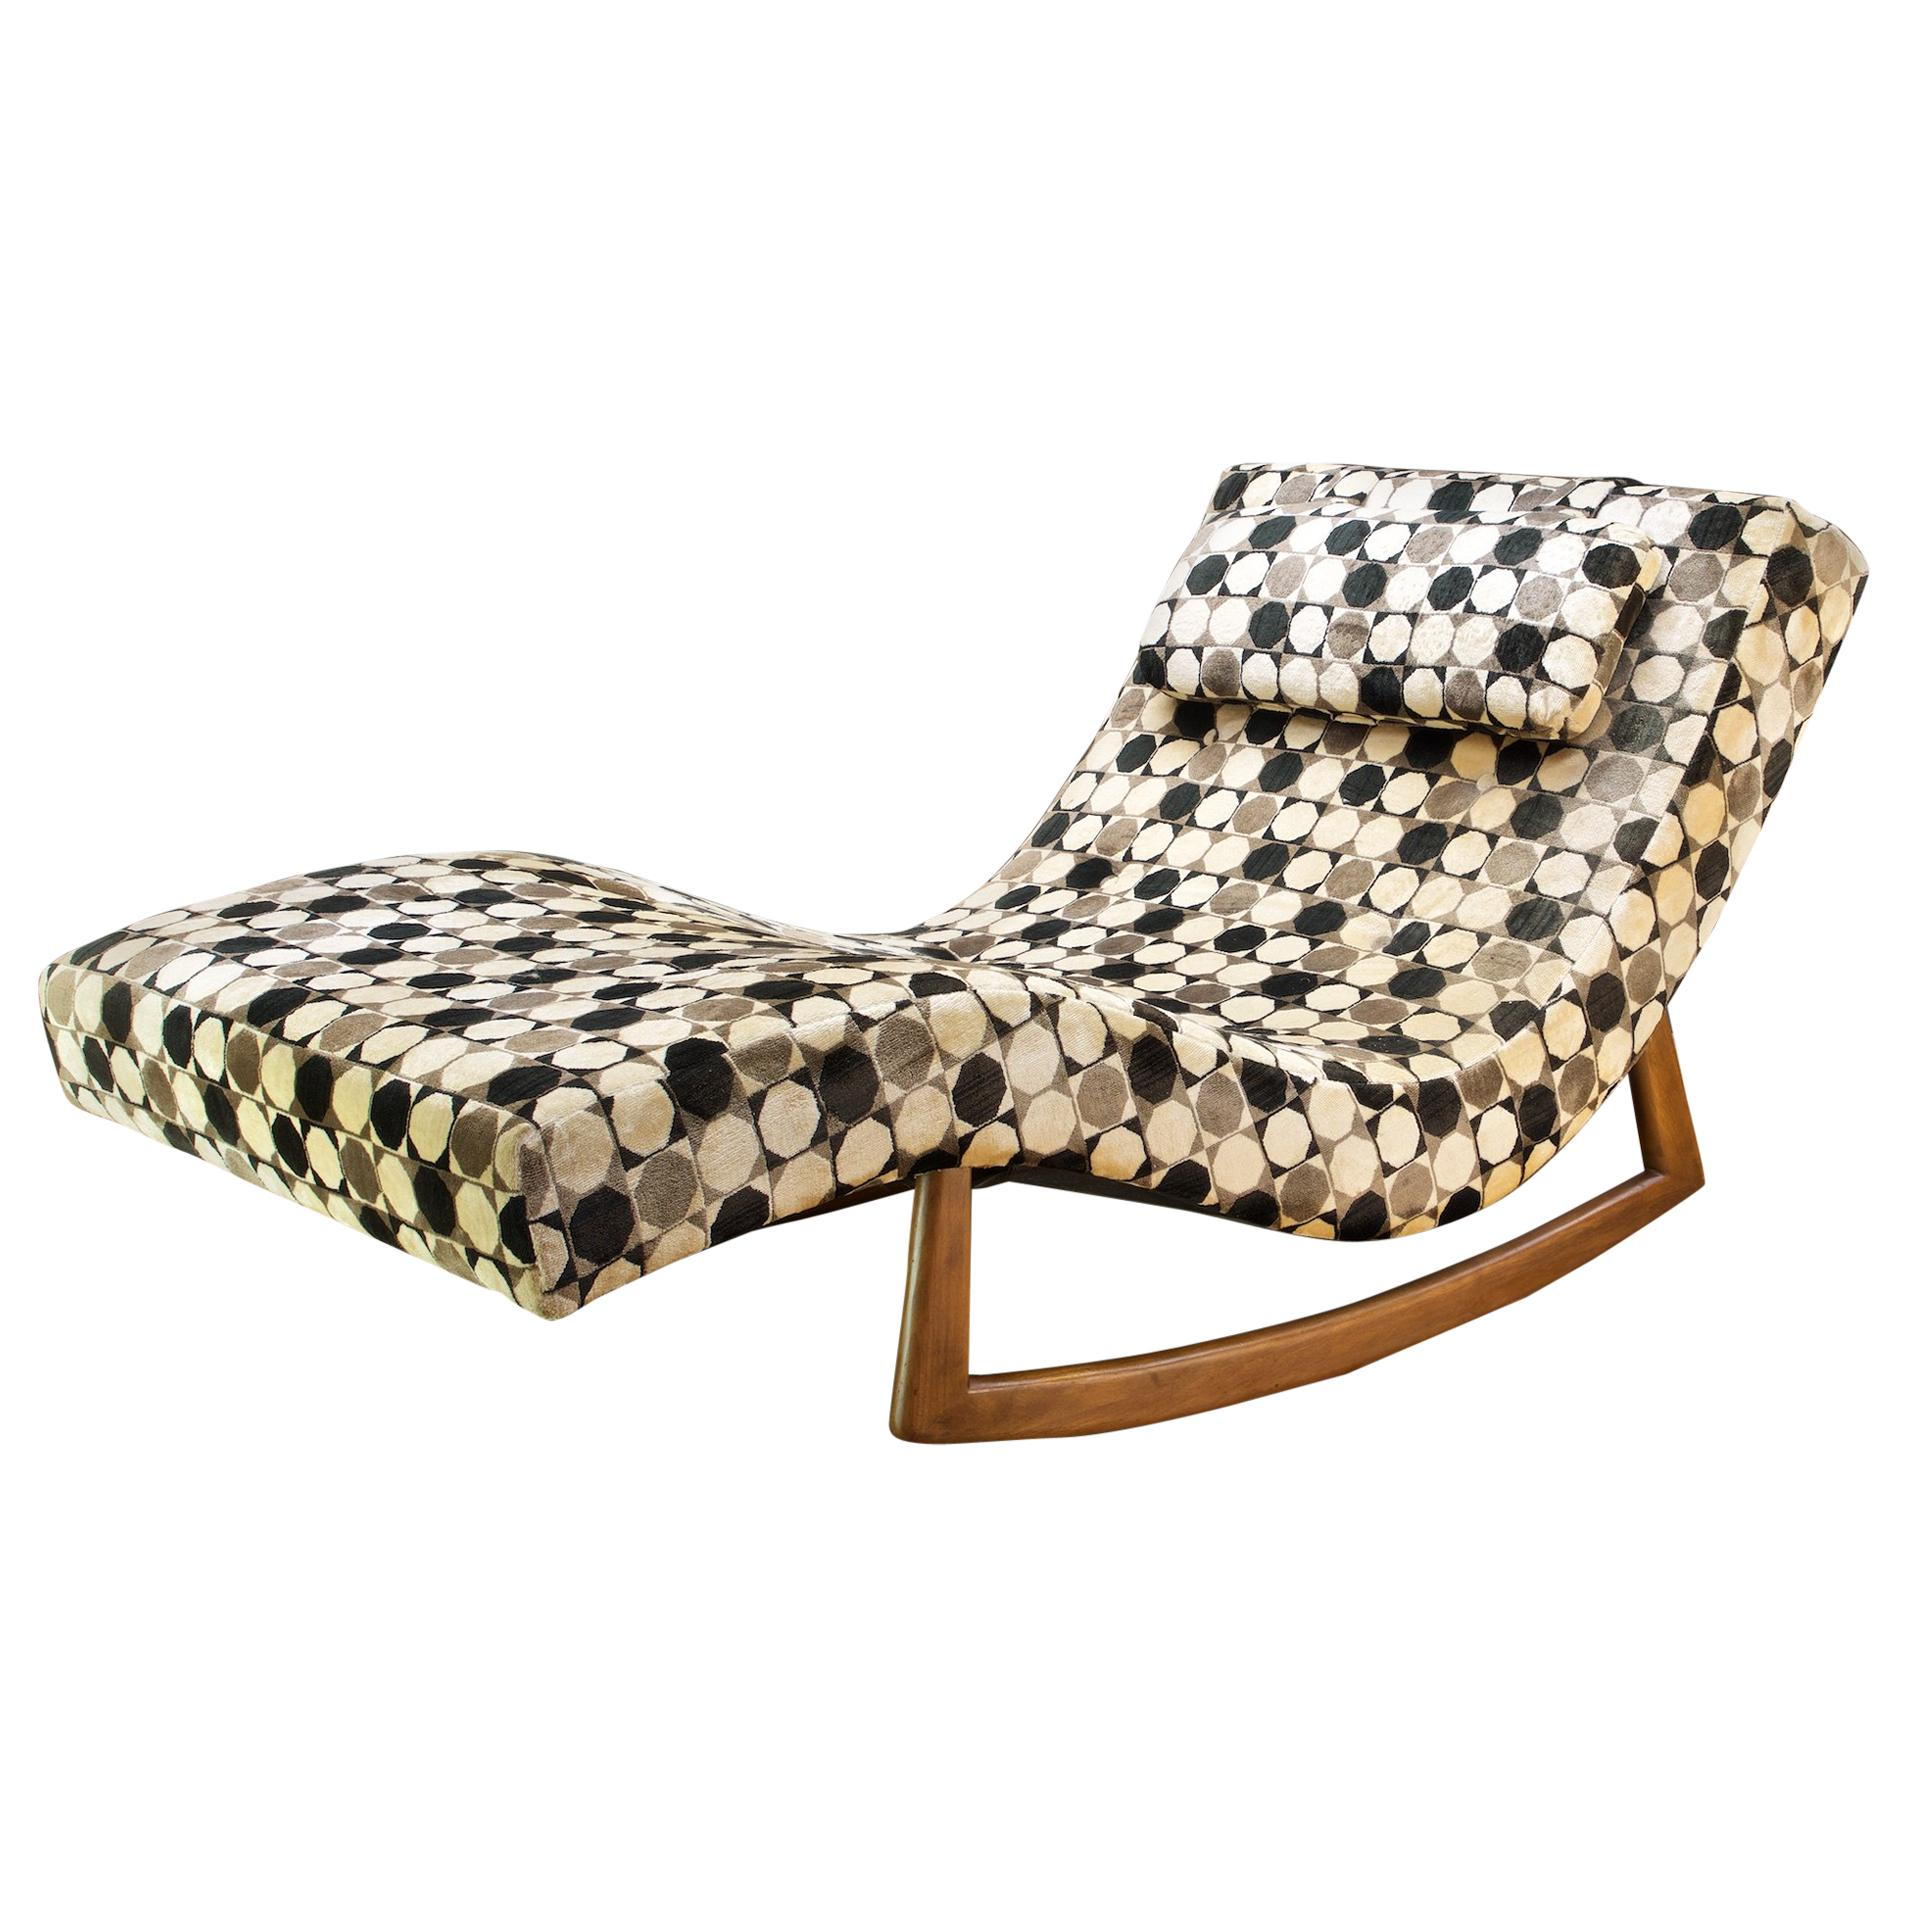 Chaise Rocking Chair Adrian Pearsall Rocking Chair By Craft Associates